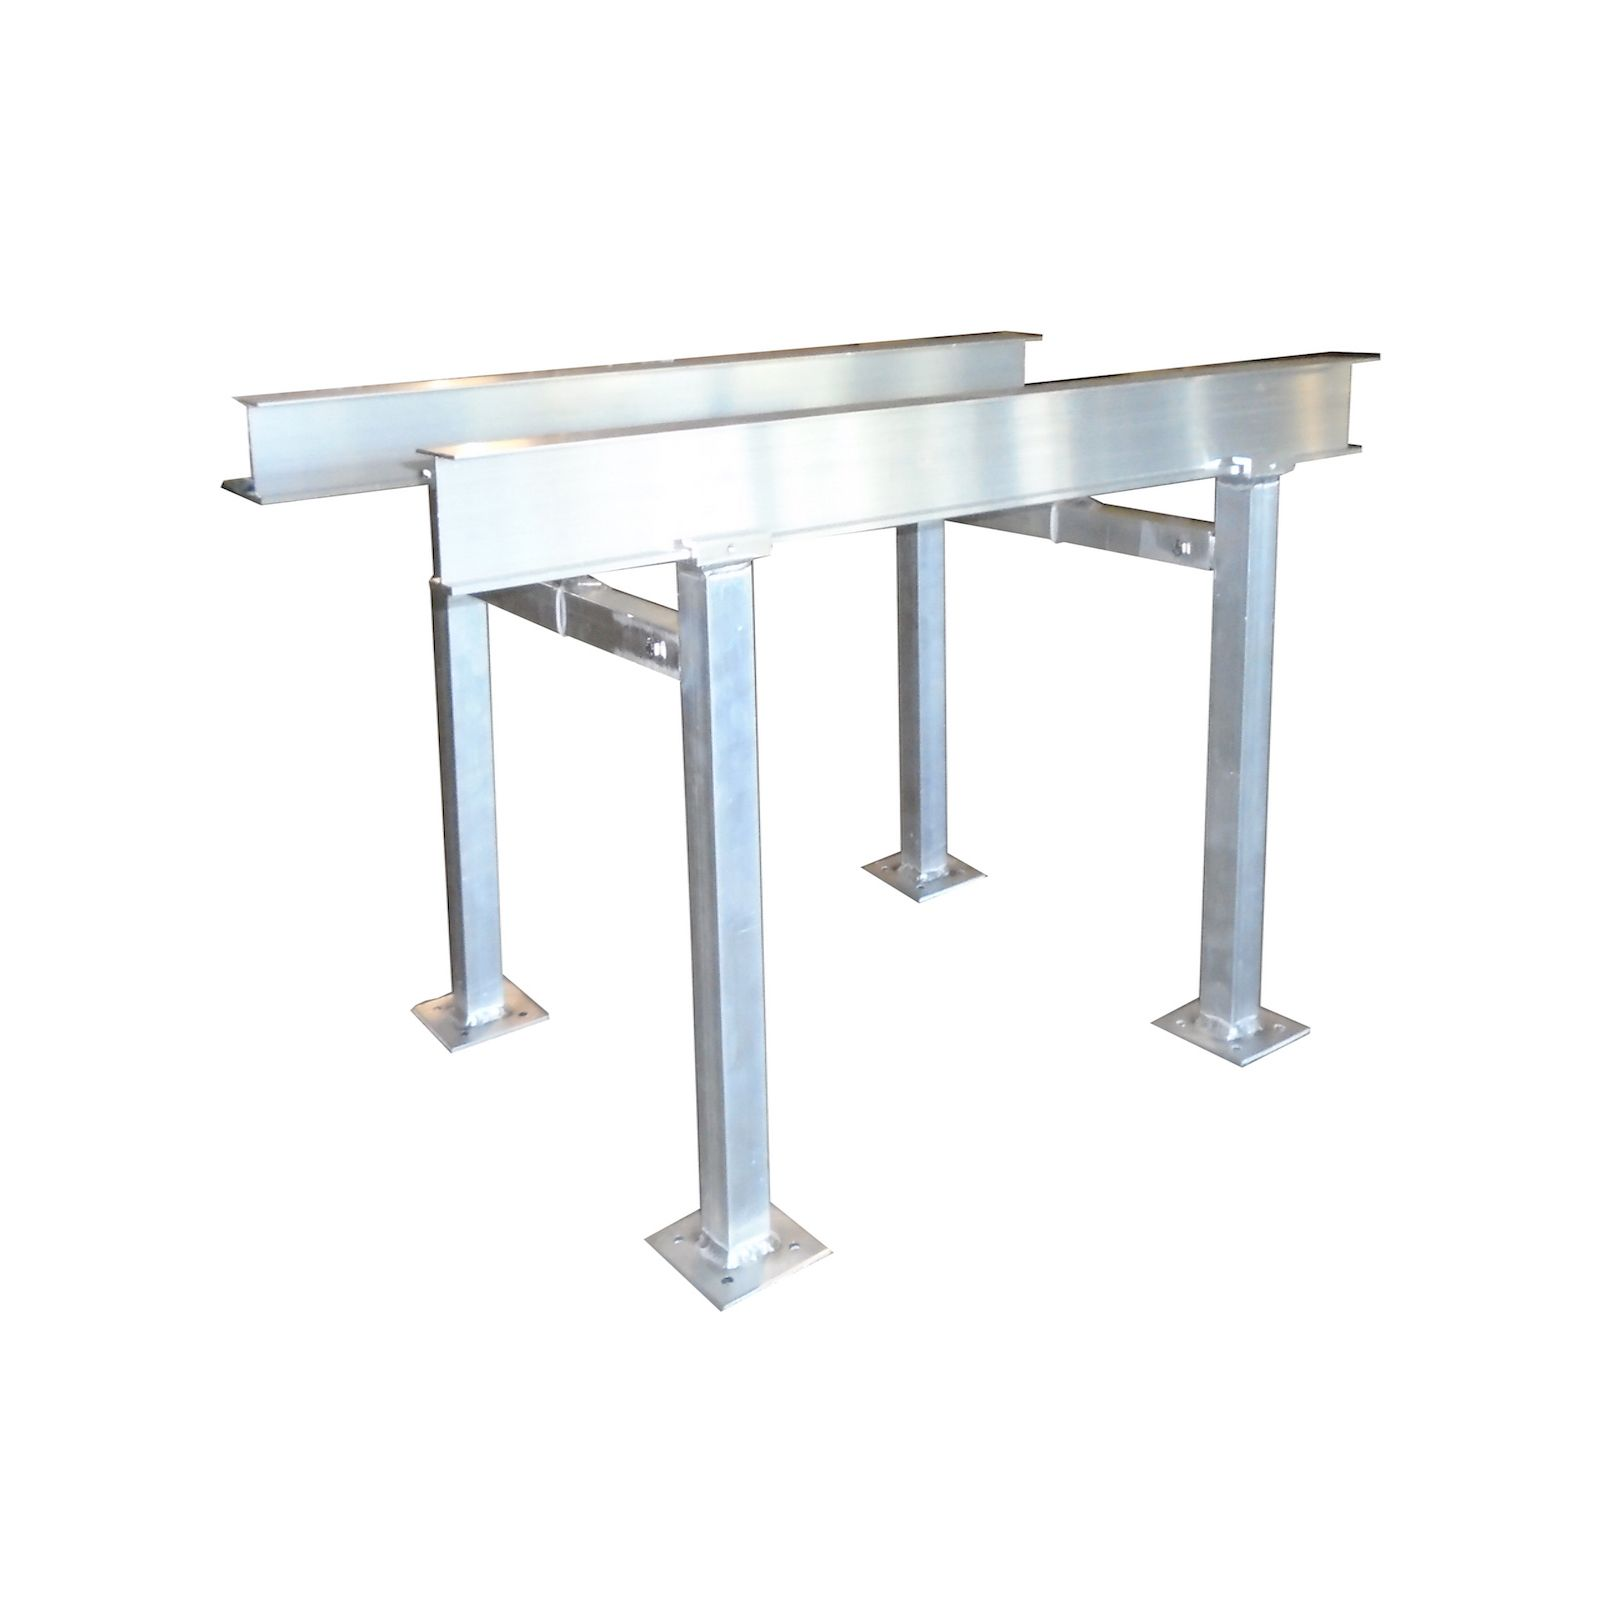 "The Metal Shop 007-603 - #603, Adjustable Aluminum Roof Stand 3' With 24"" Legs"